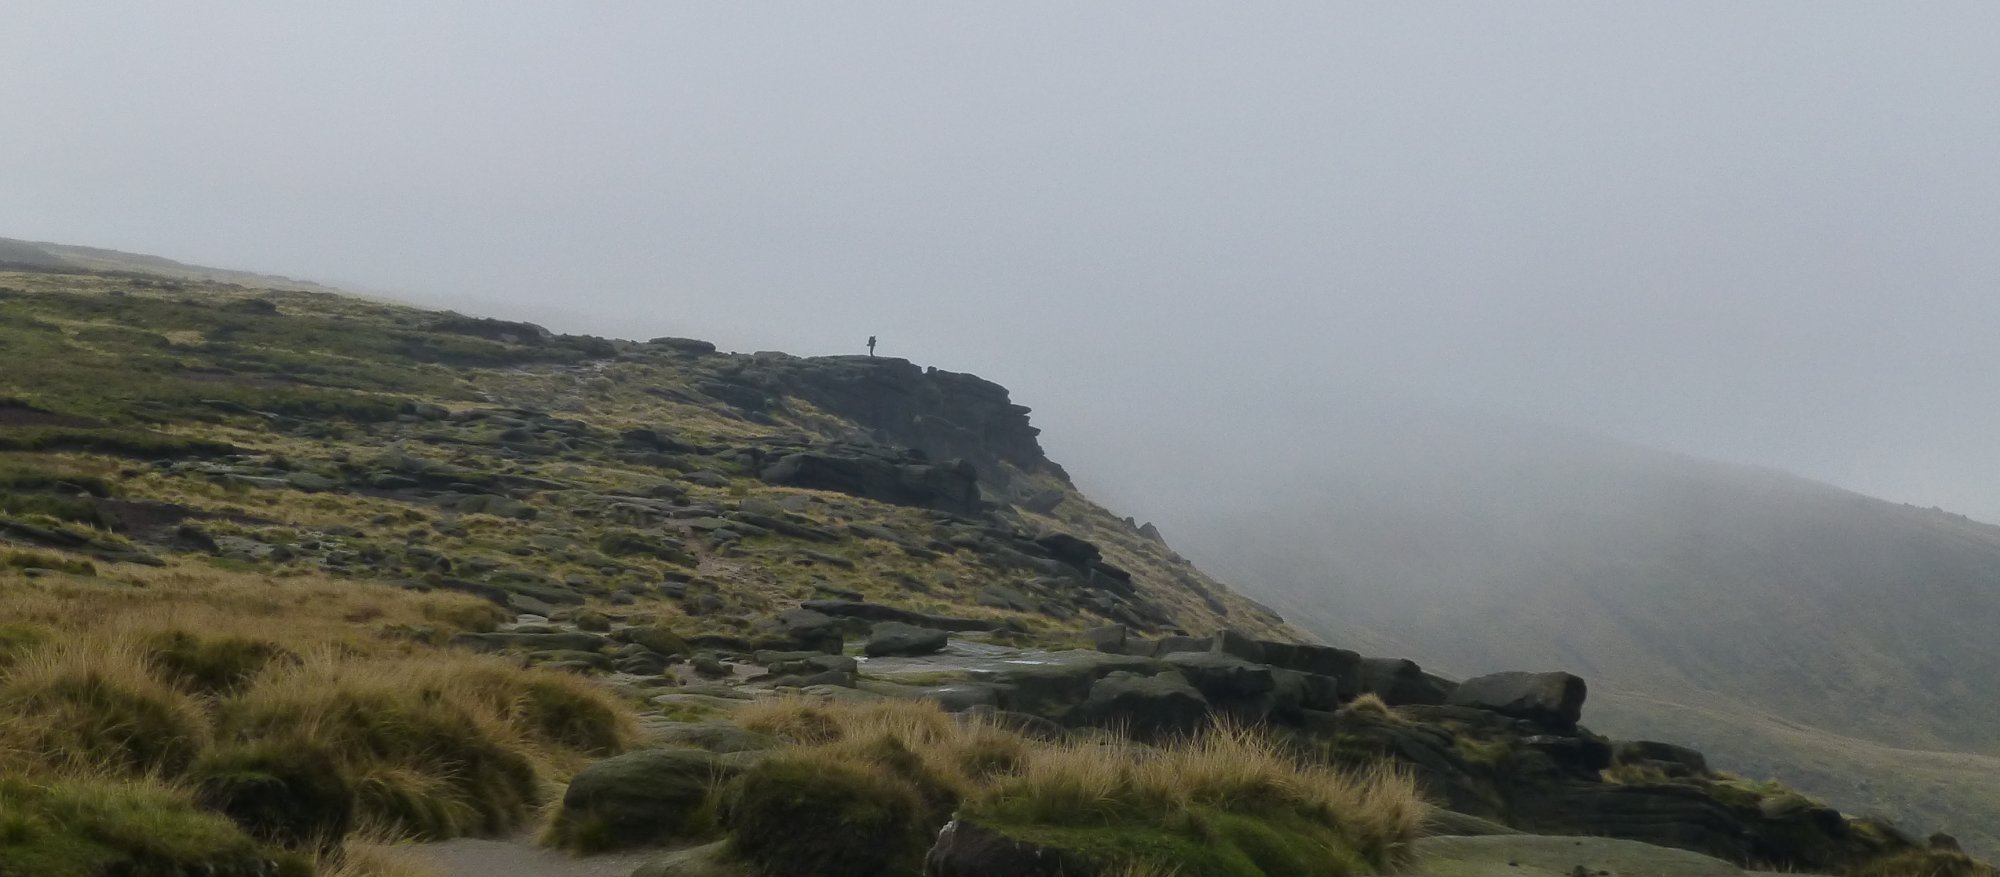 Kinder edge with the mist retreating